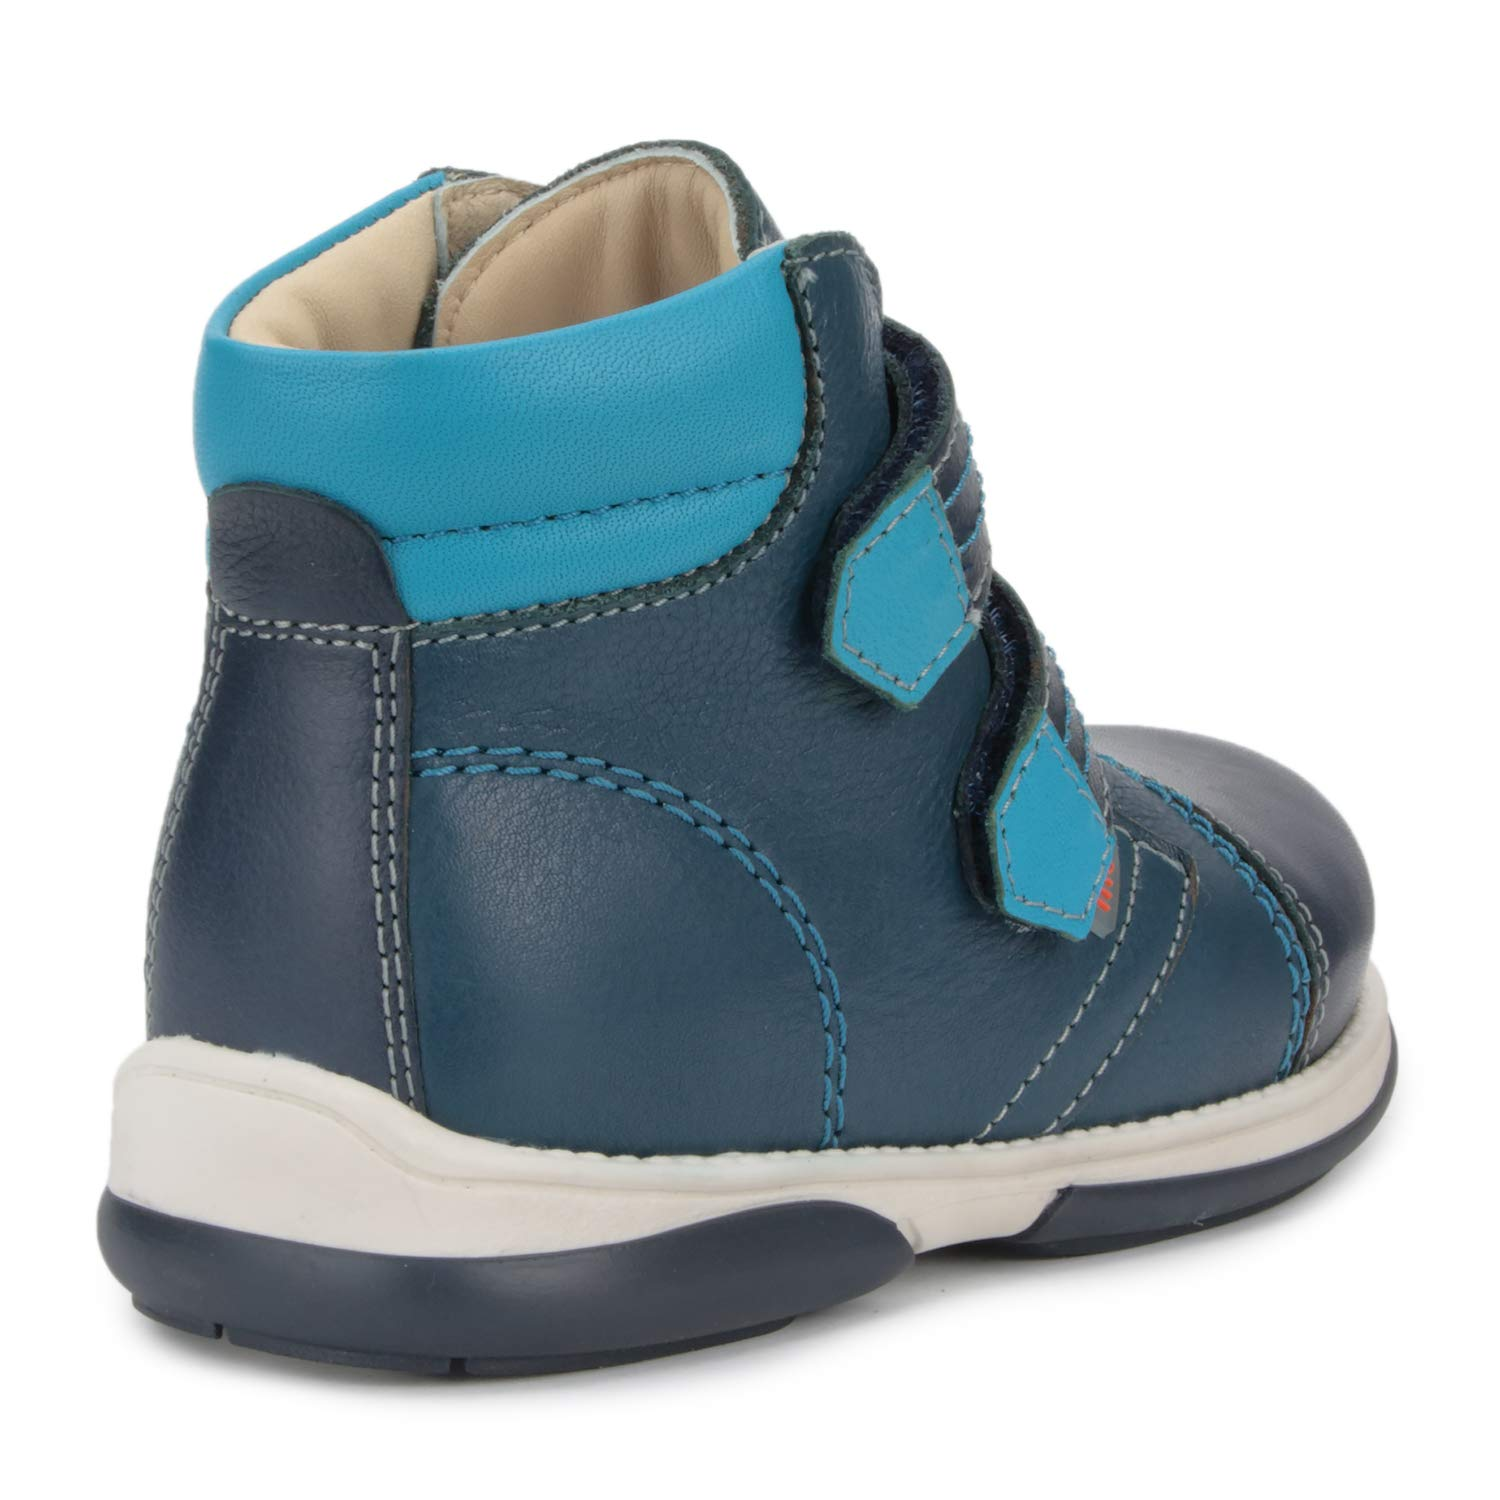 Memo Alex Boys' Corrective Orthopedic High-Top Leather Boot Diagnostic Sole, Navy Blue, 22 (6.5 M US Toddler) by Memo (Image #2)